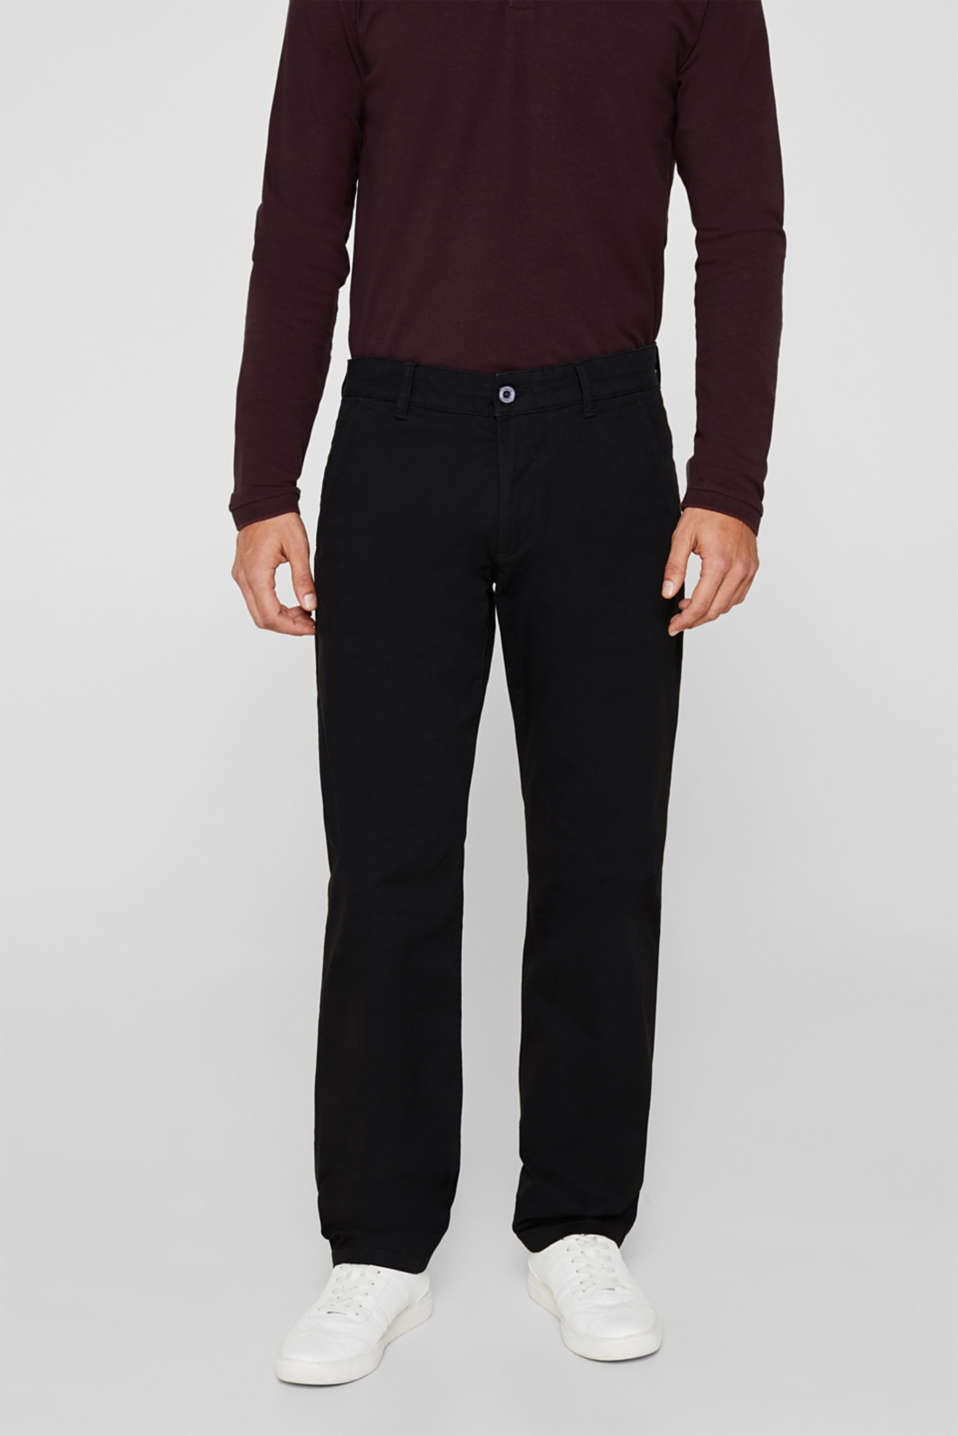 Esprit - Basic tracksuit bottoms in stretch cotton